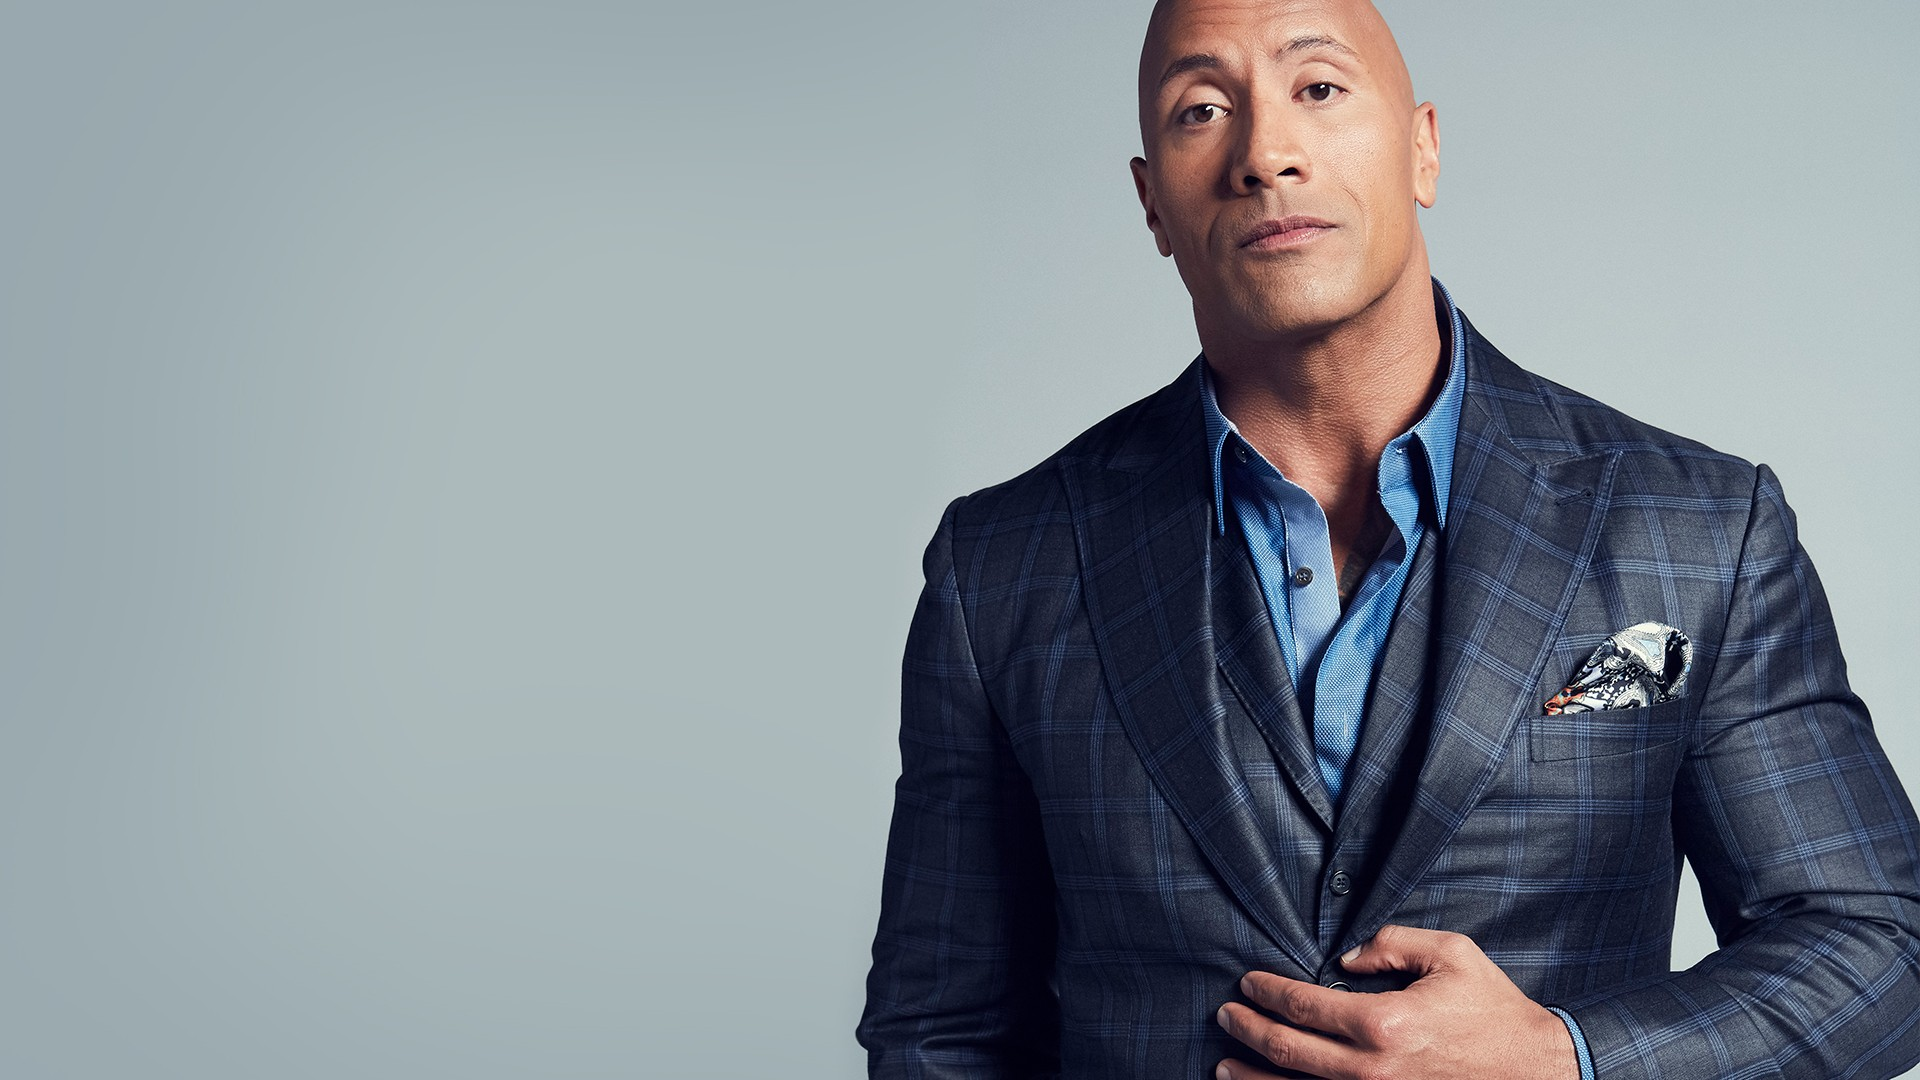 Images Of Dwayne The Rock Johnson: The Rock On Baywatch, The Fate